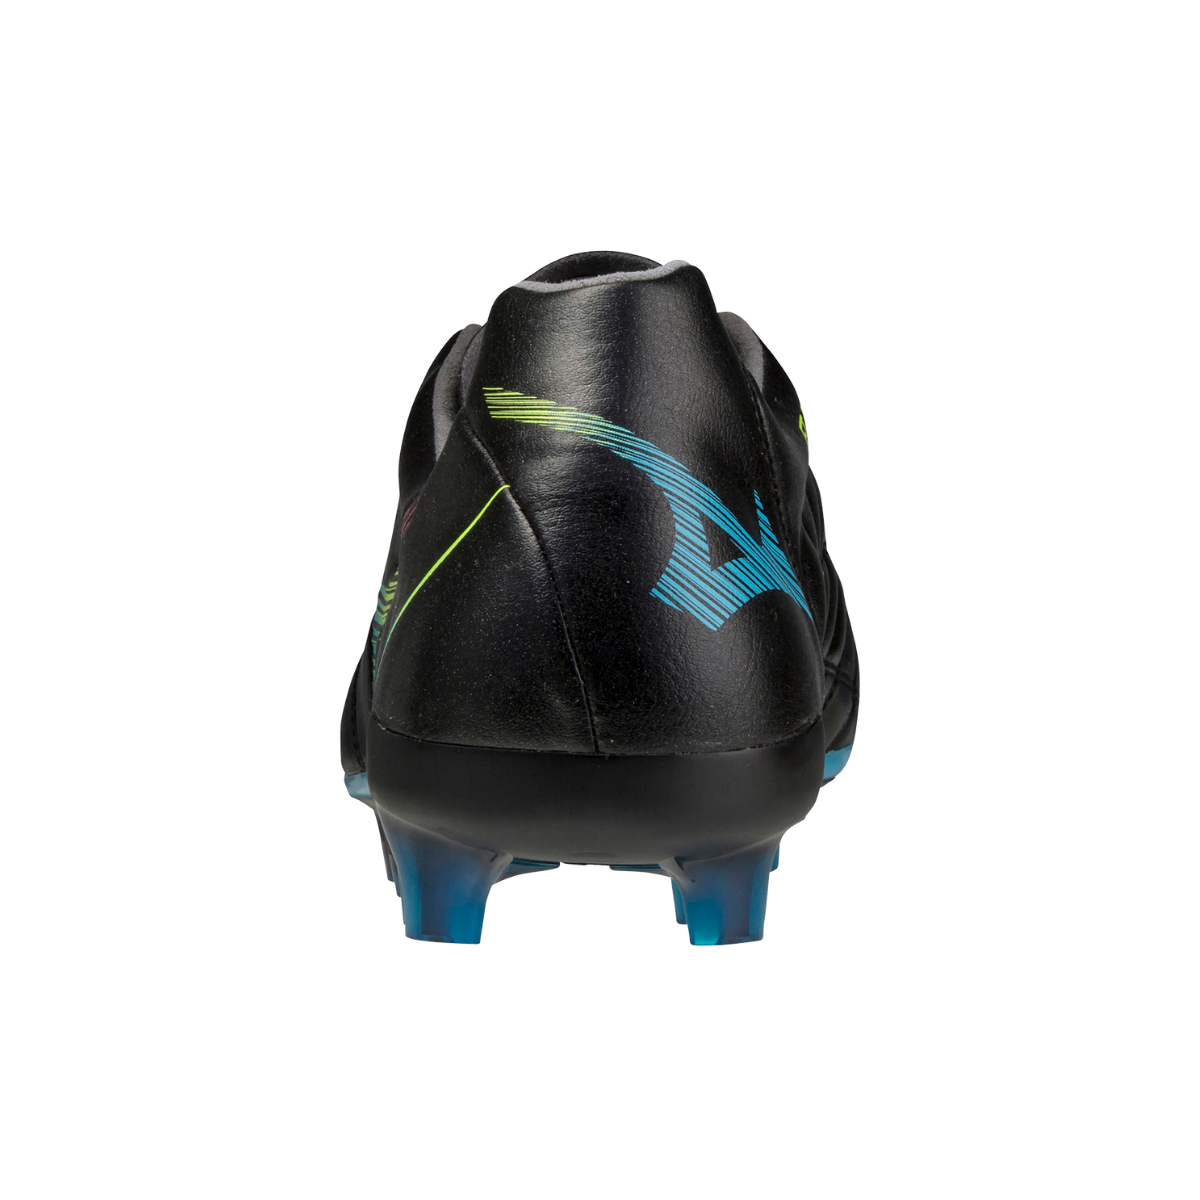 REBULA CUP JAPAN Black / Blue Atoll